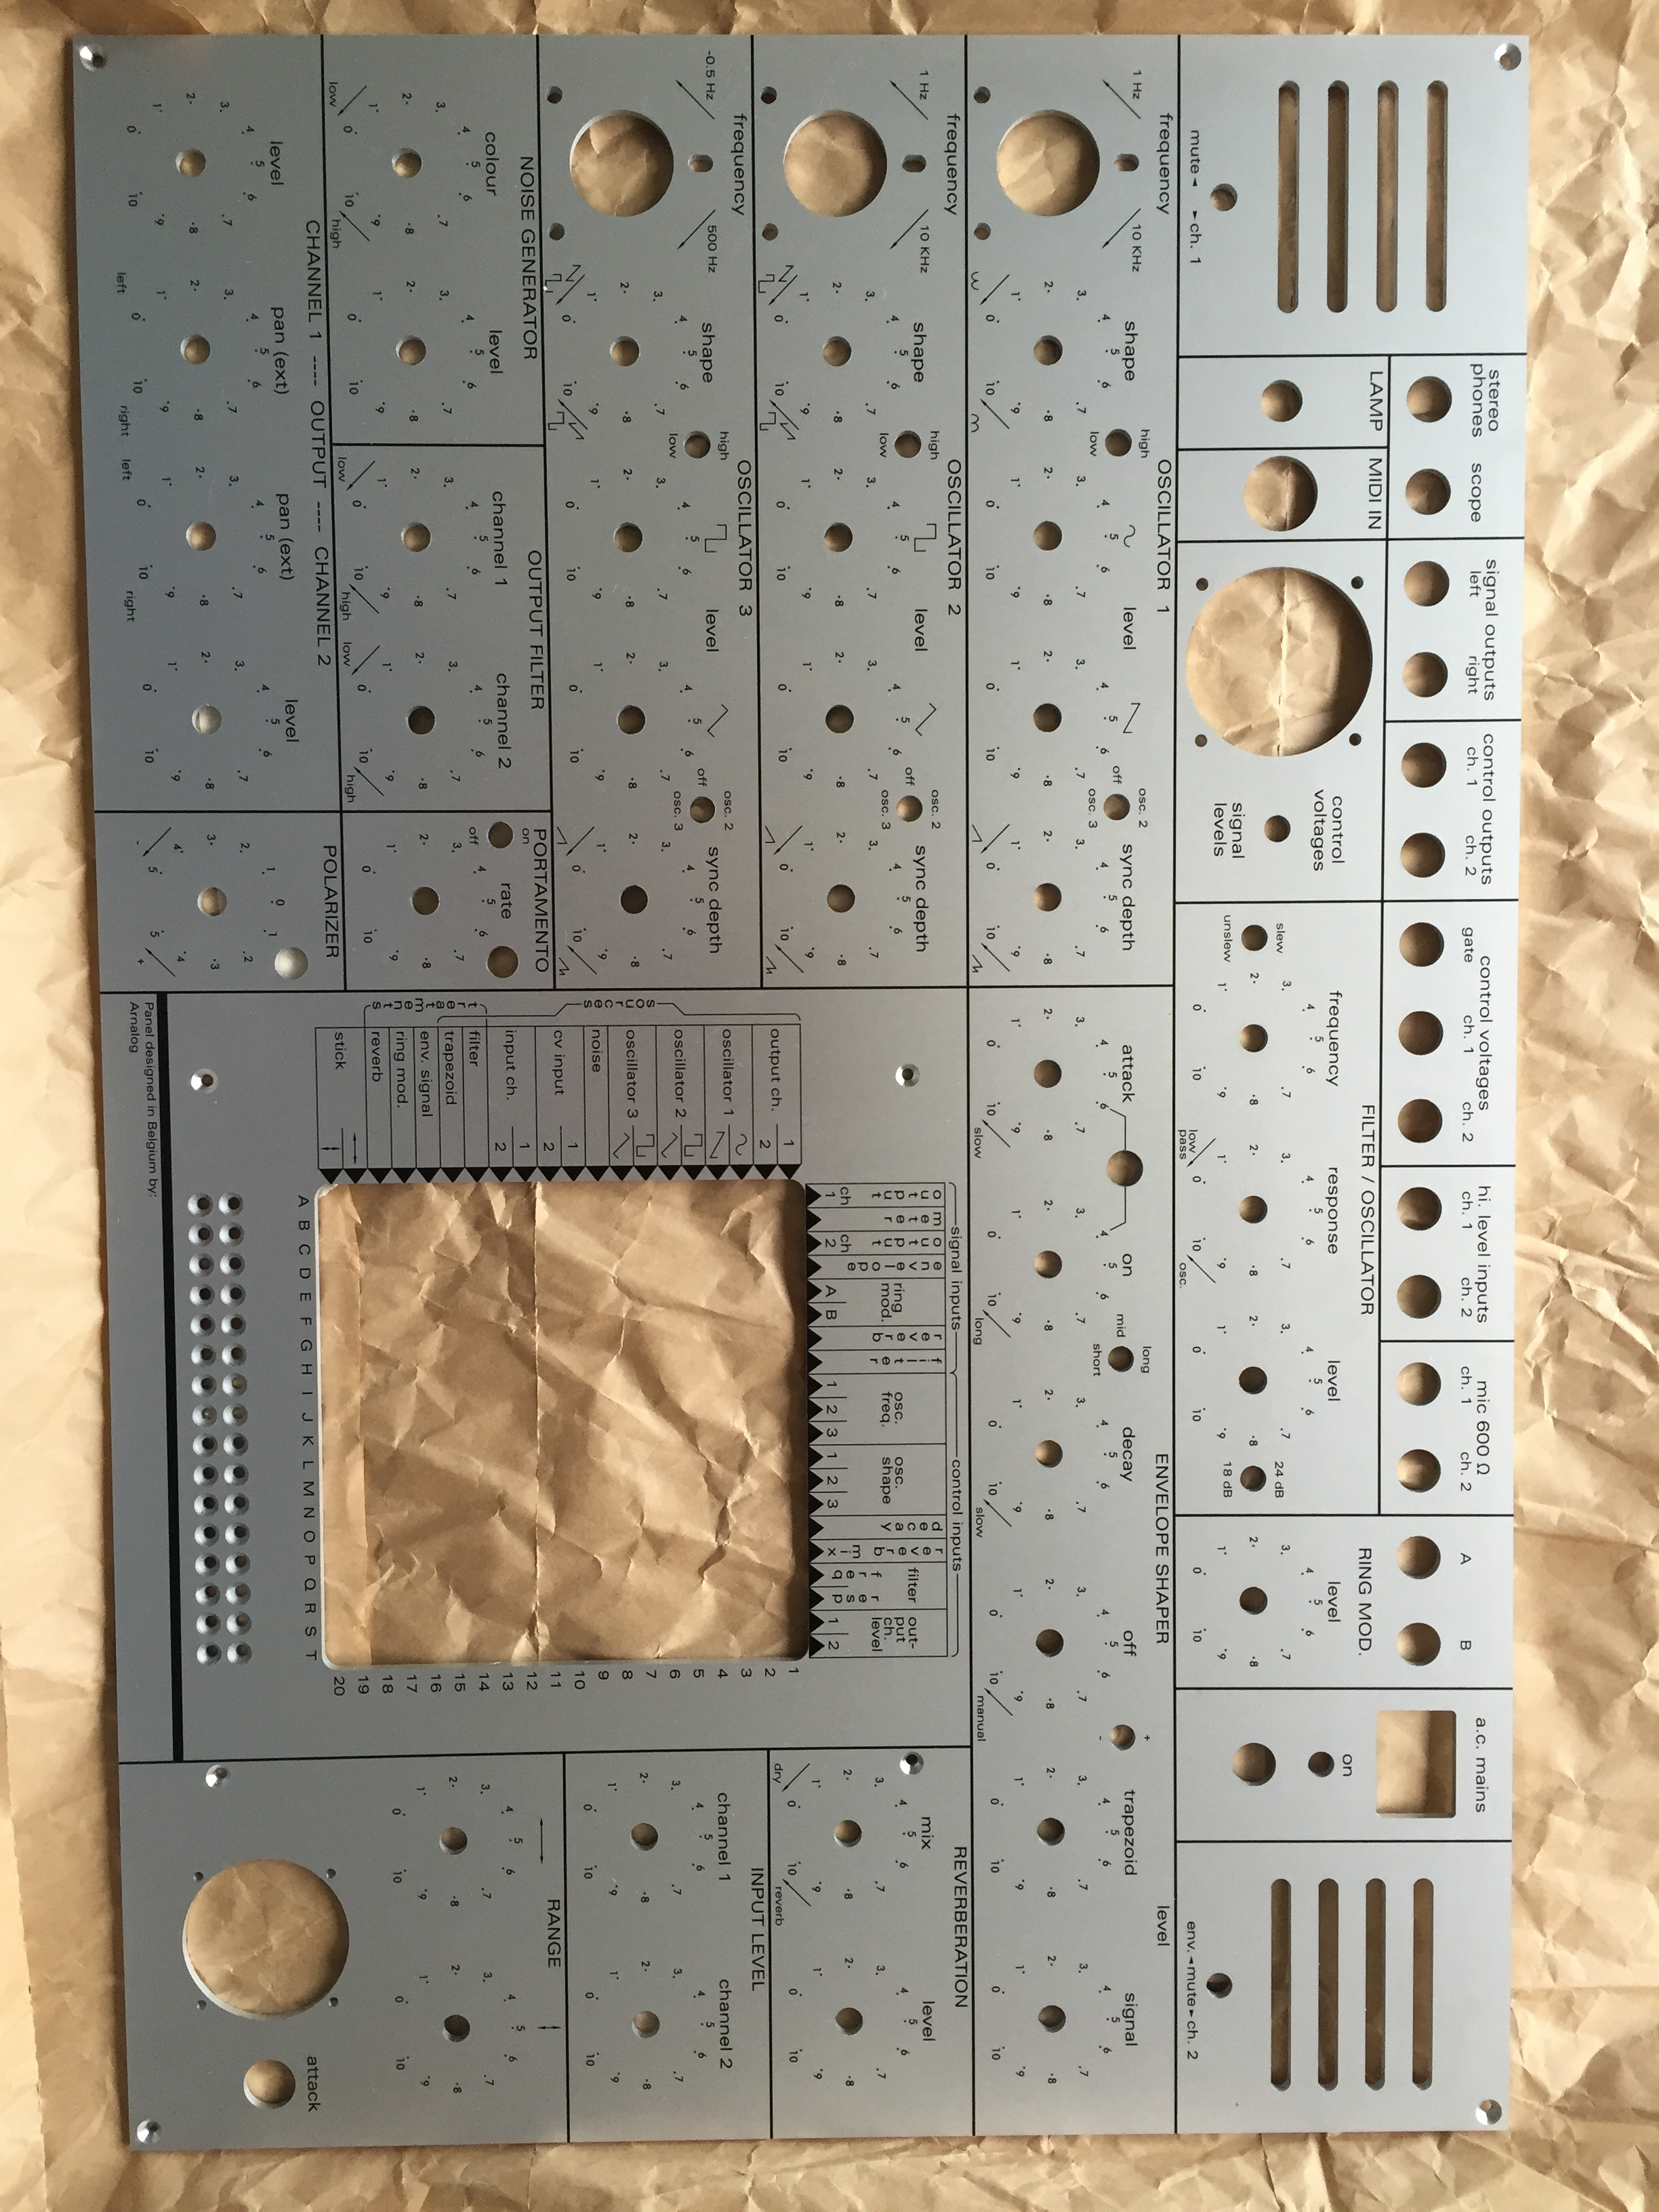 EMS Synthi A Clone - DIY Synth other - We love DIY Synthesizer